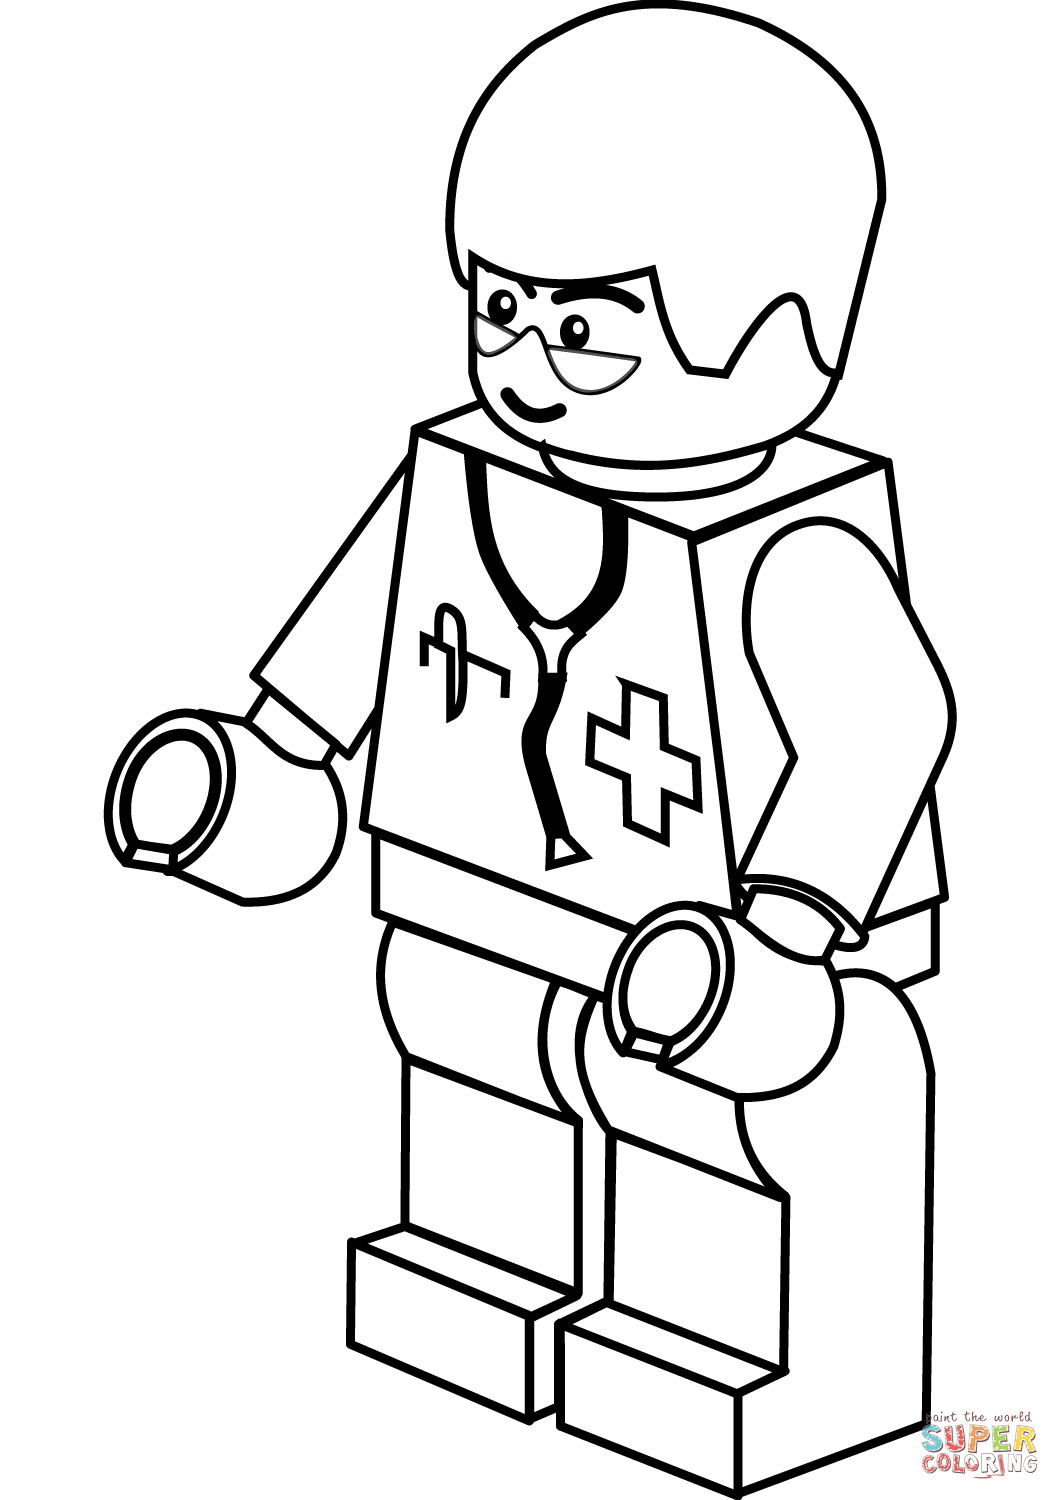 Lego Doctor Coloring Page | Free Printable Coloring Pages